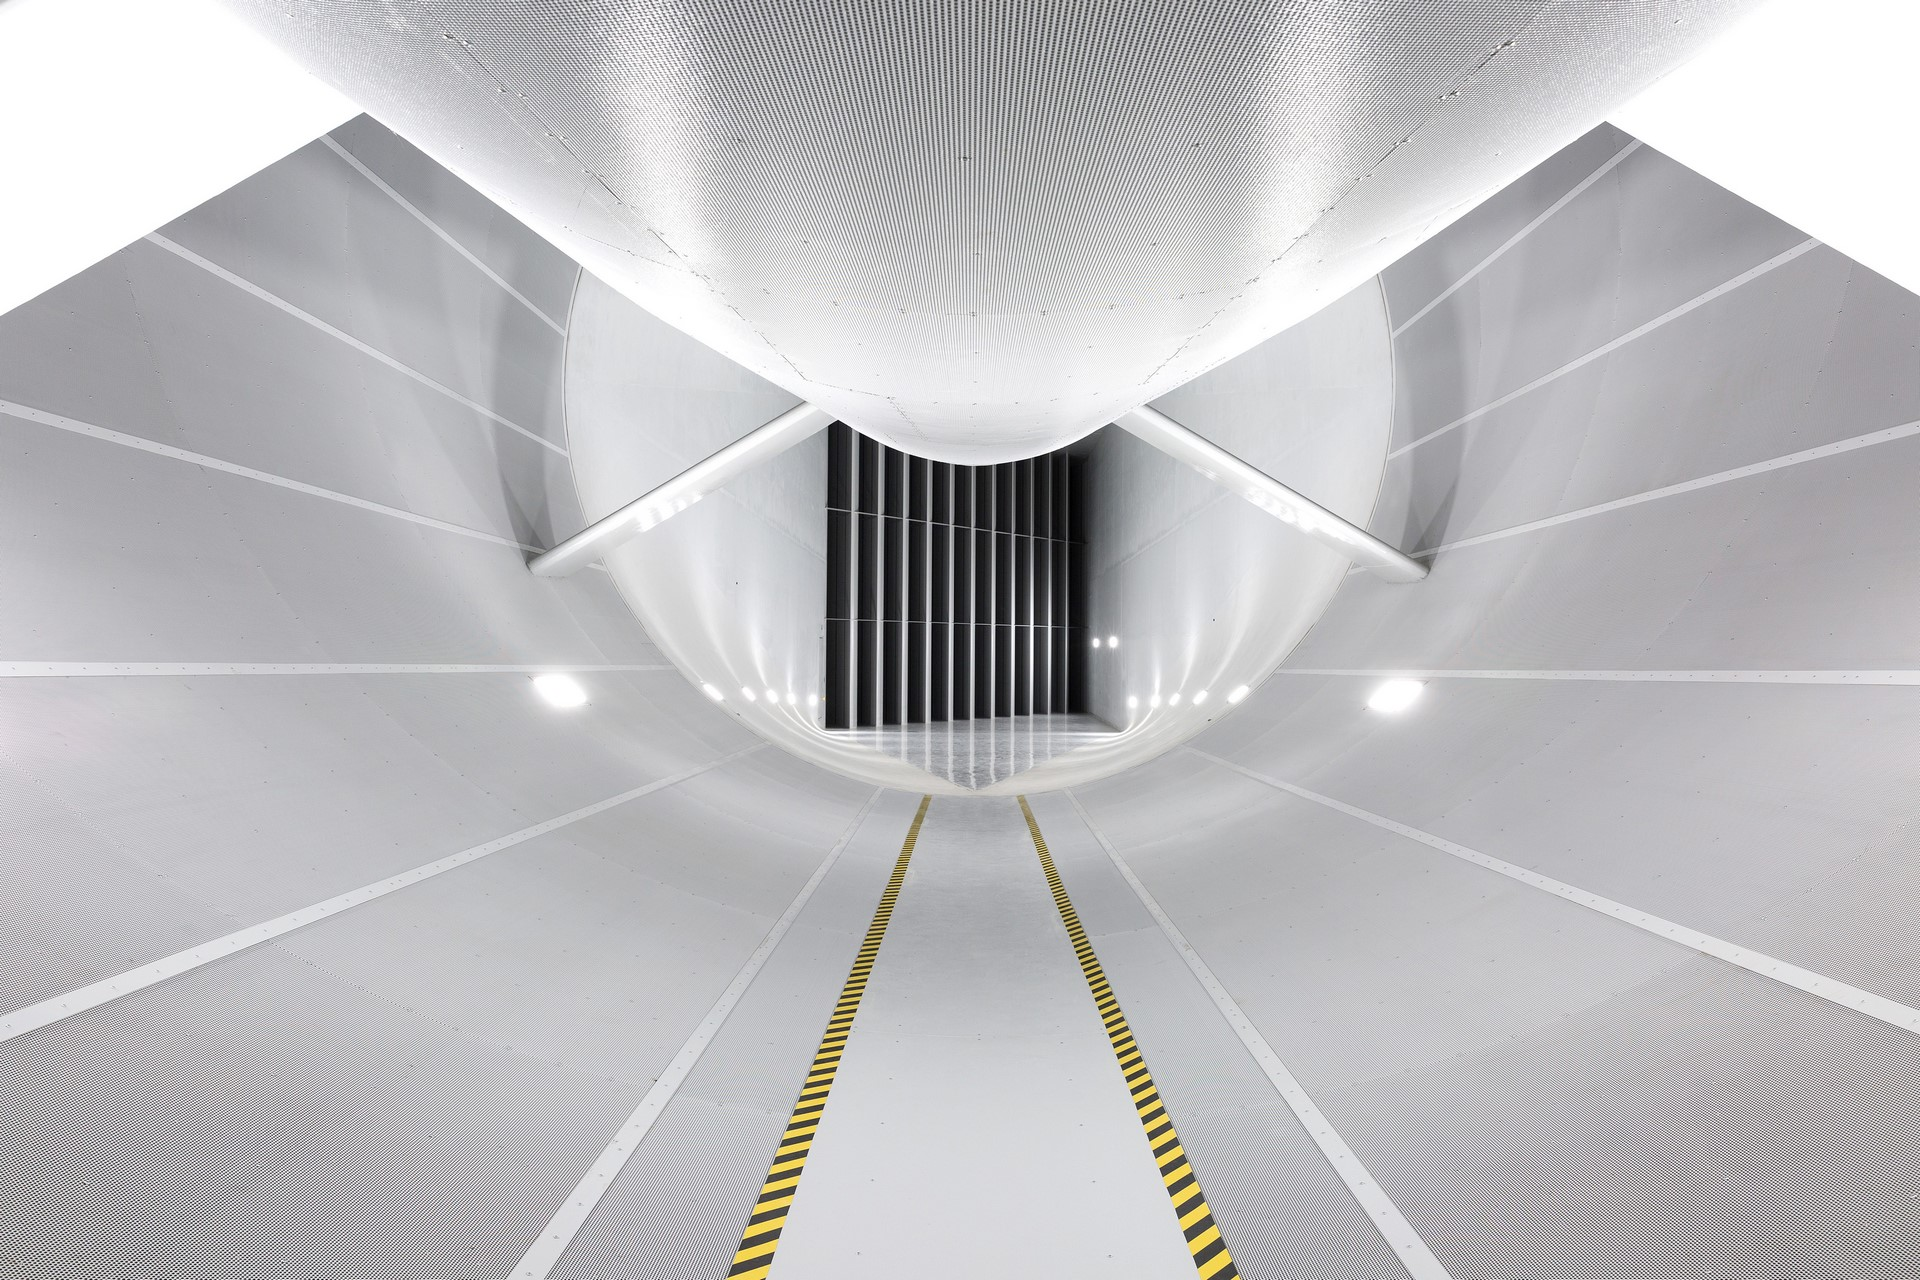 Volkswagen Wind Tunnel Efficiency Center (1)